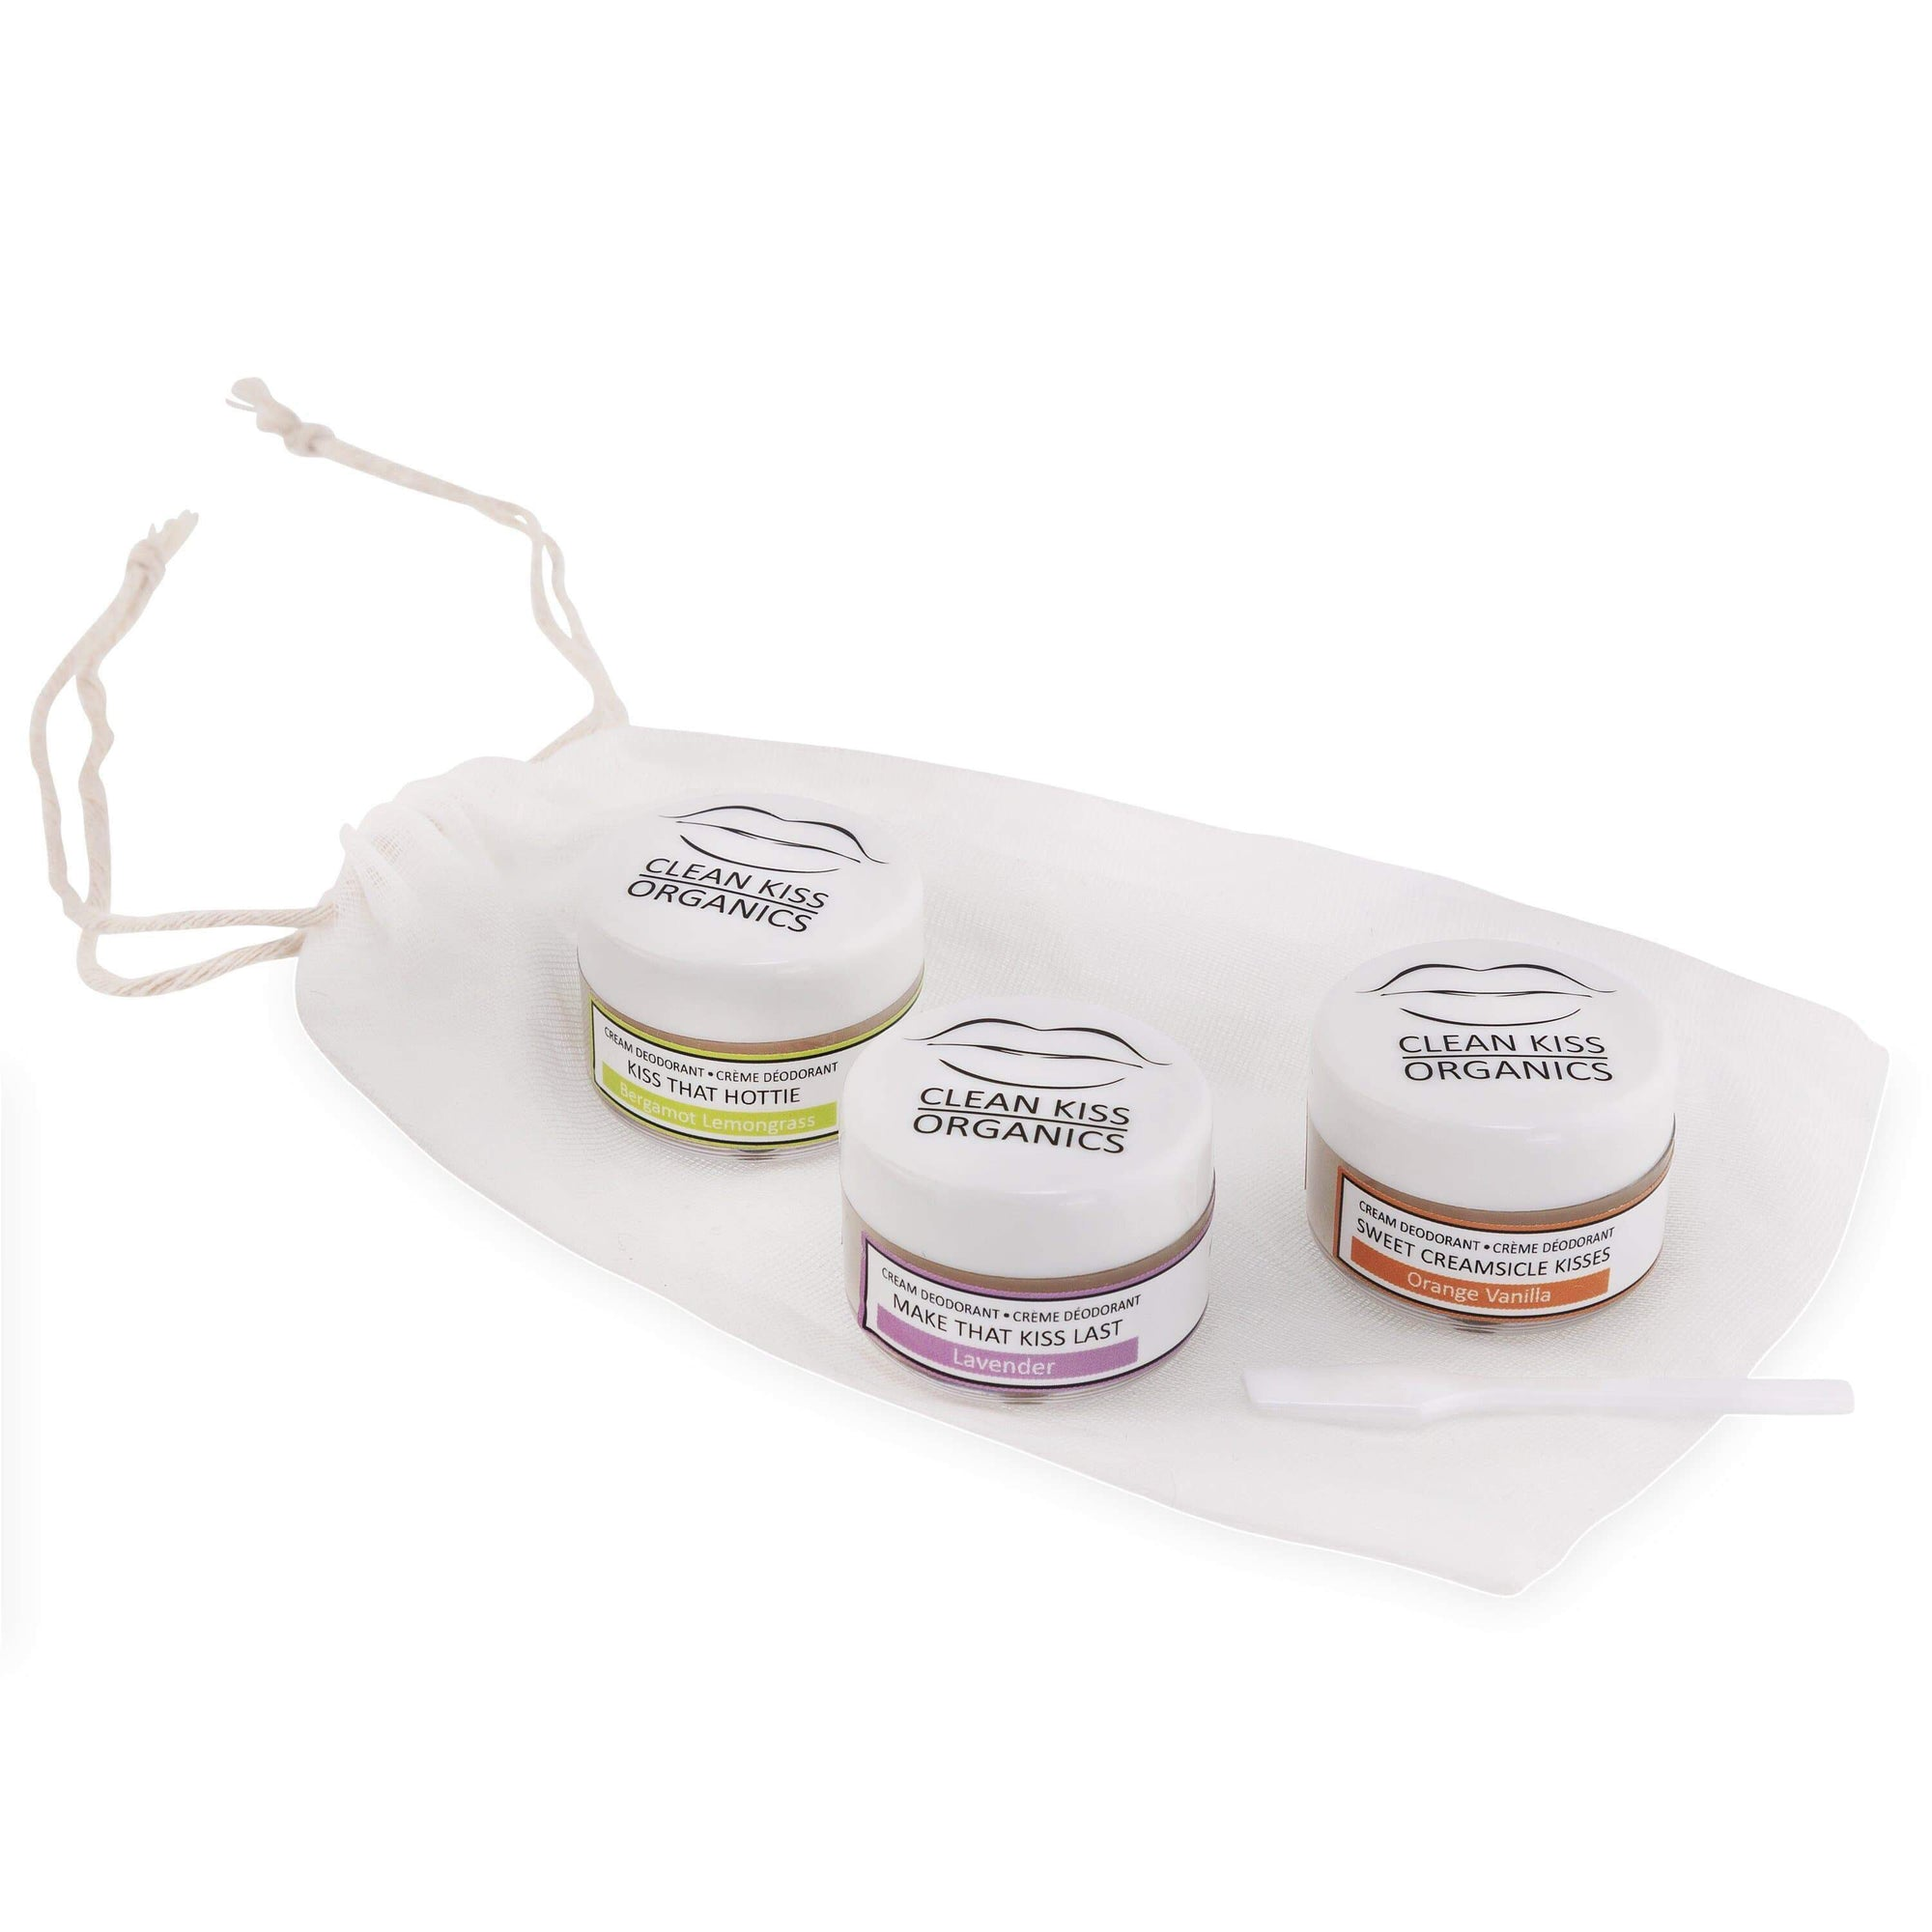 Deodorant Travel Trio 15g lavender orange lemongrass hemp cotton travel bag